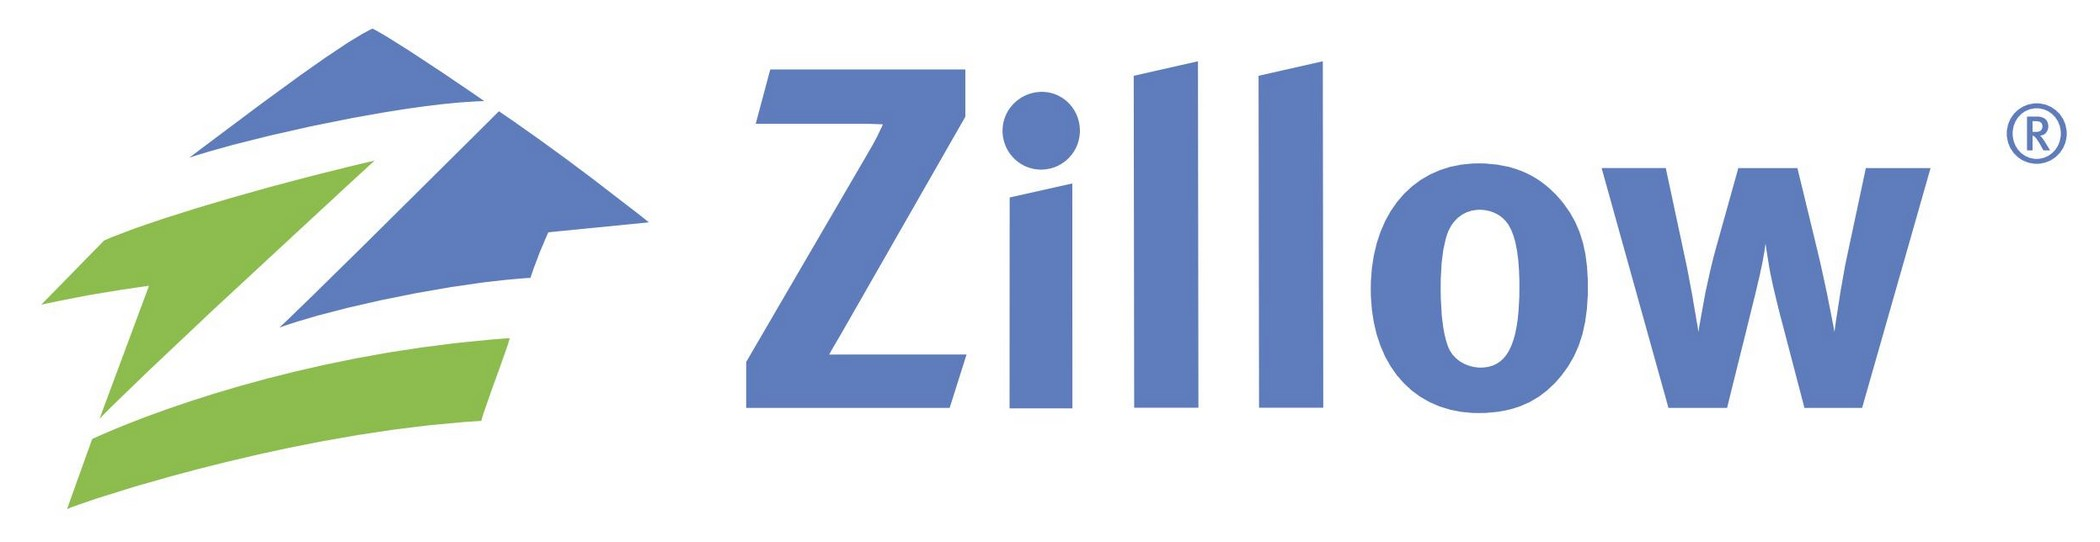 Zillow Logo [EPS File] Vector EPS Free Download, Logo, Icons, Clipart.